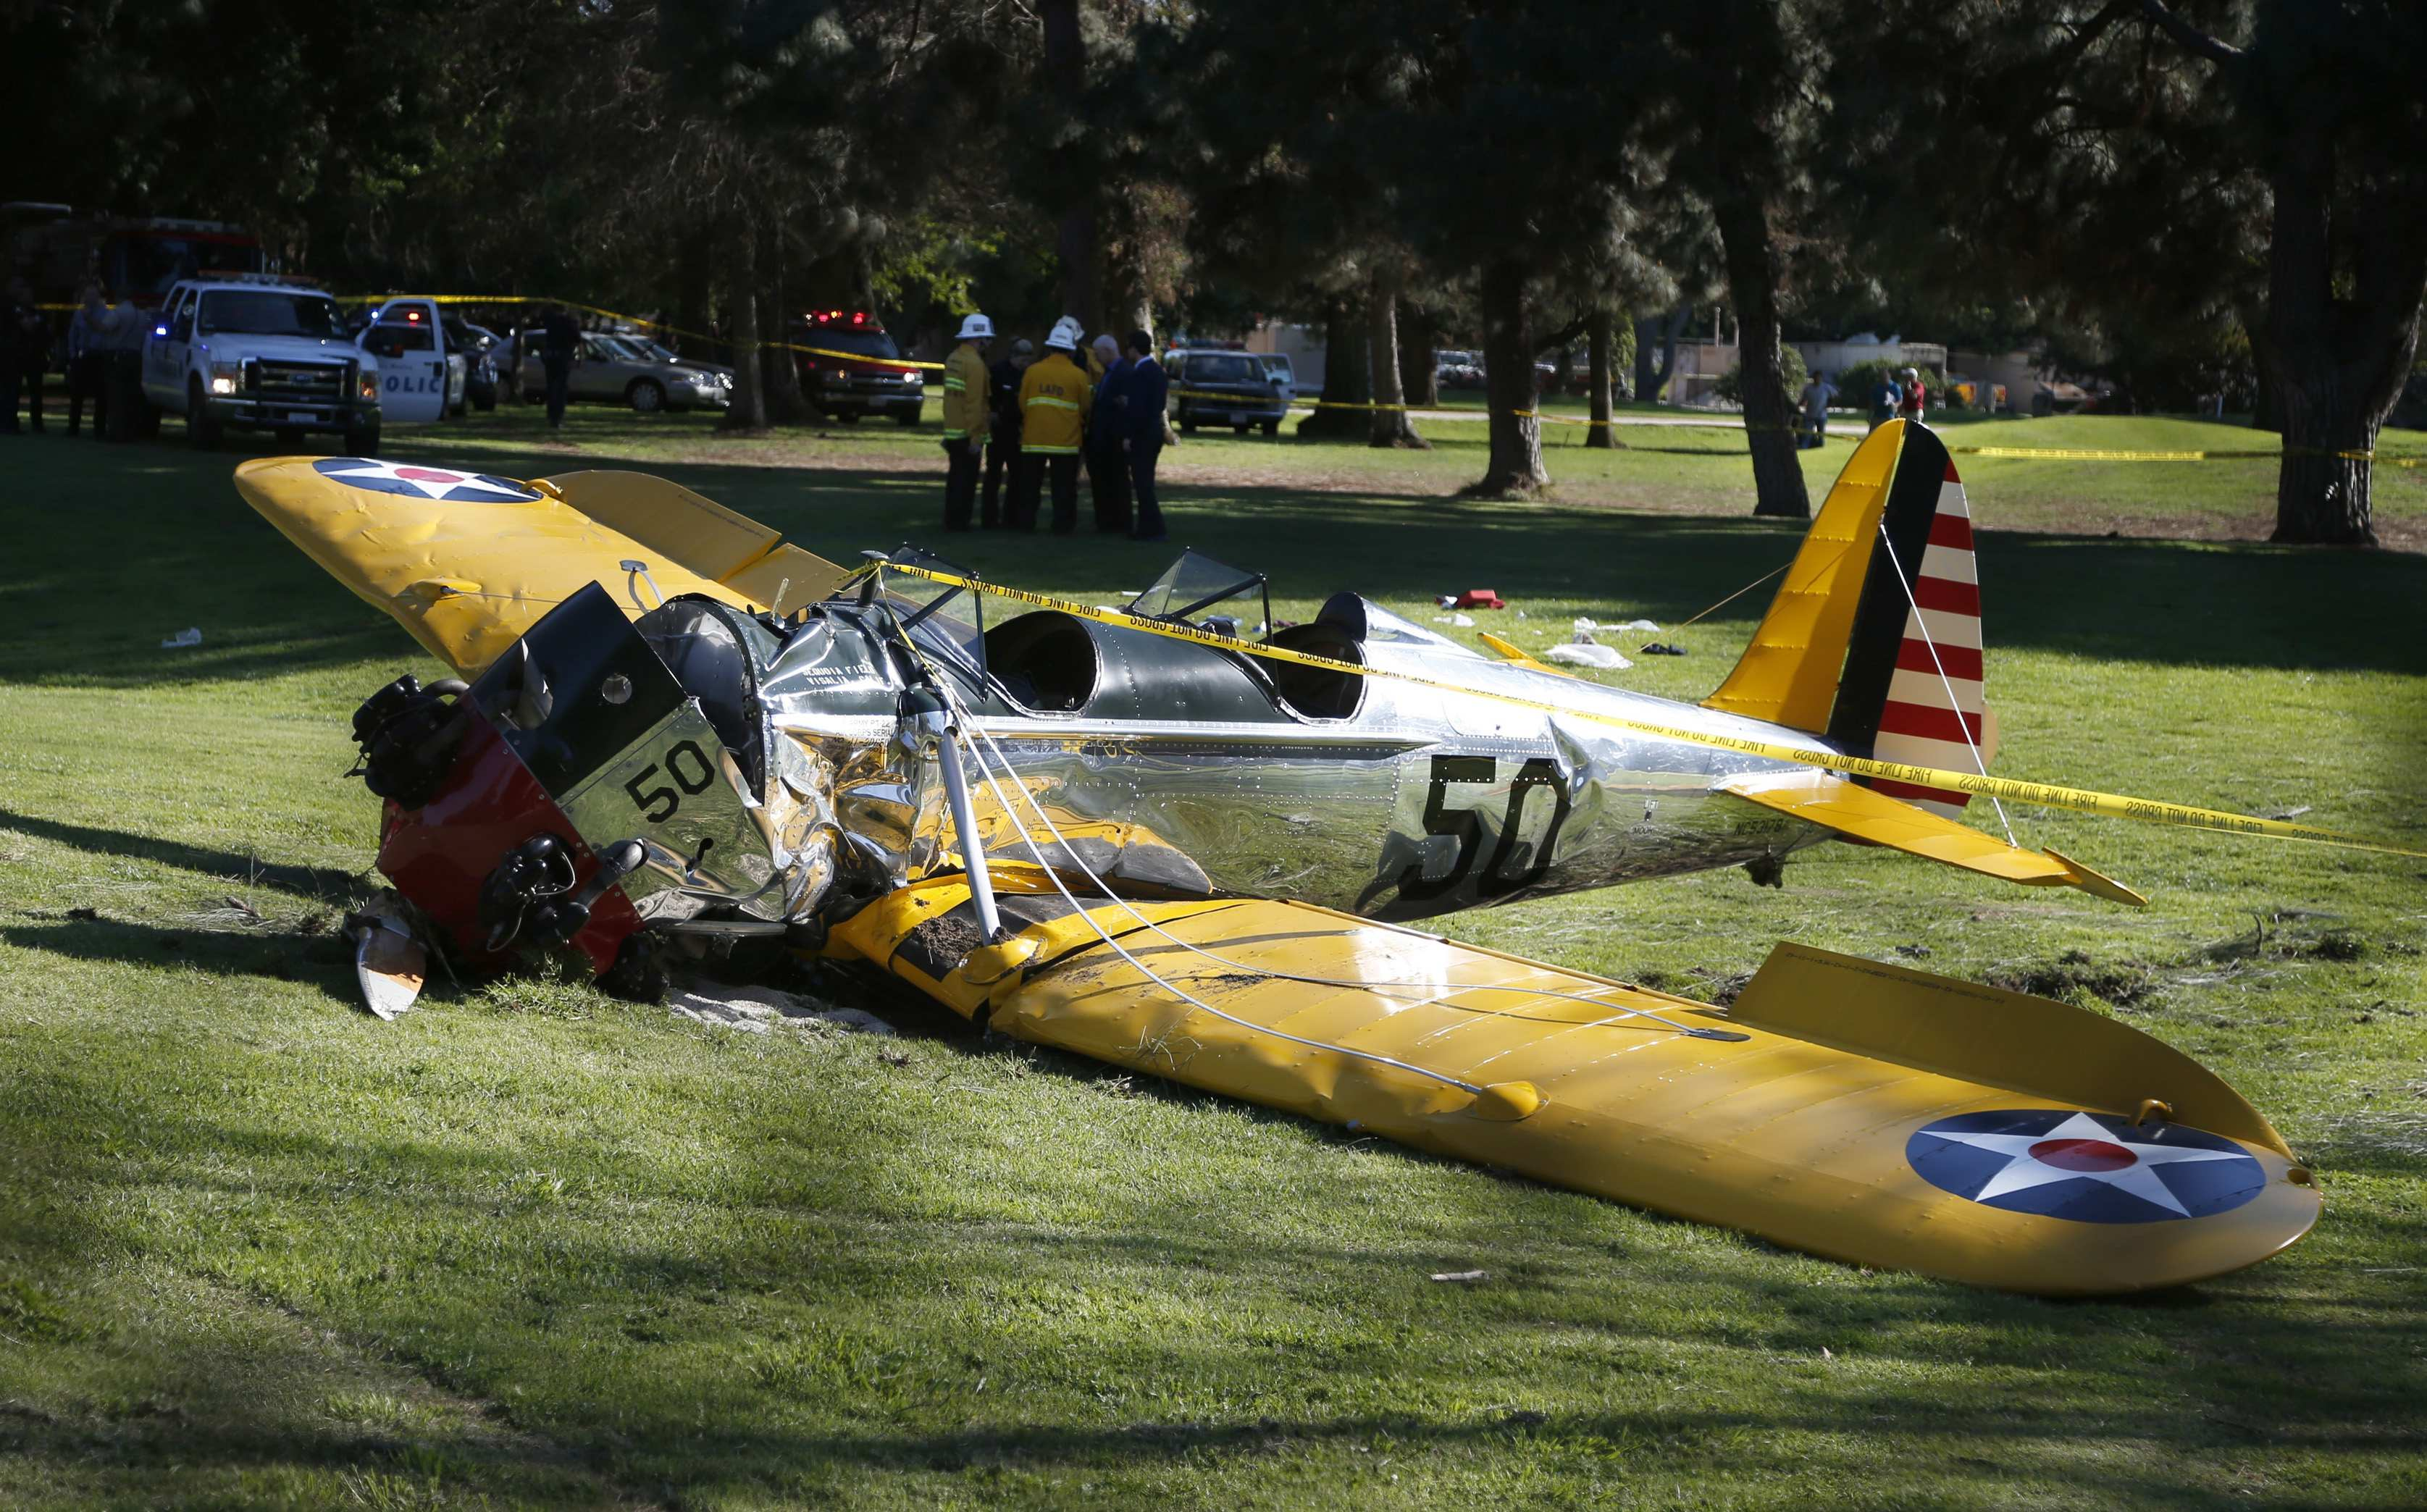 Actor Harrison Ford injured in small plane crash near Los Angeles: report